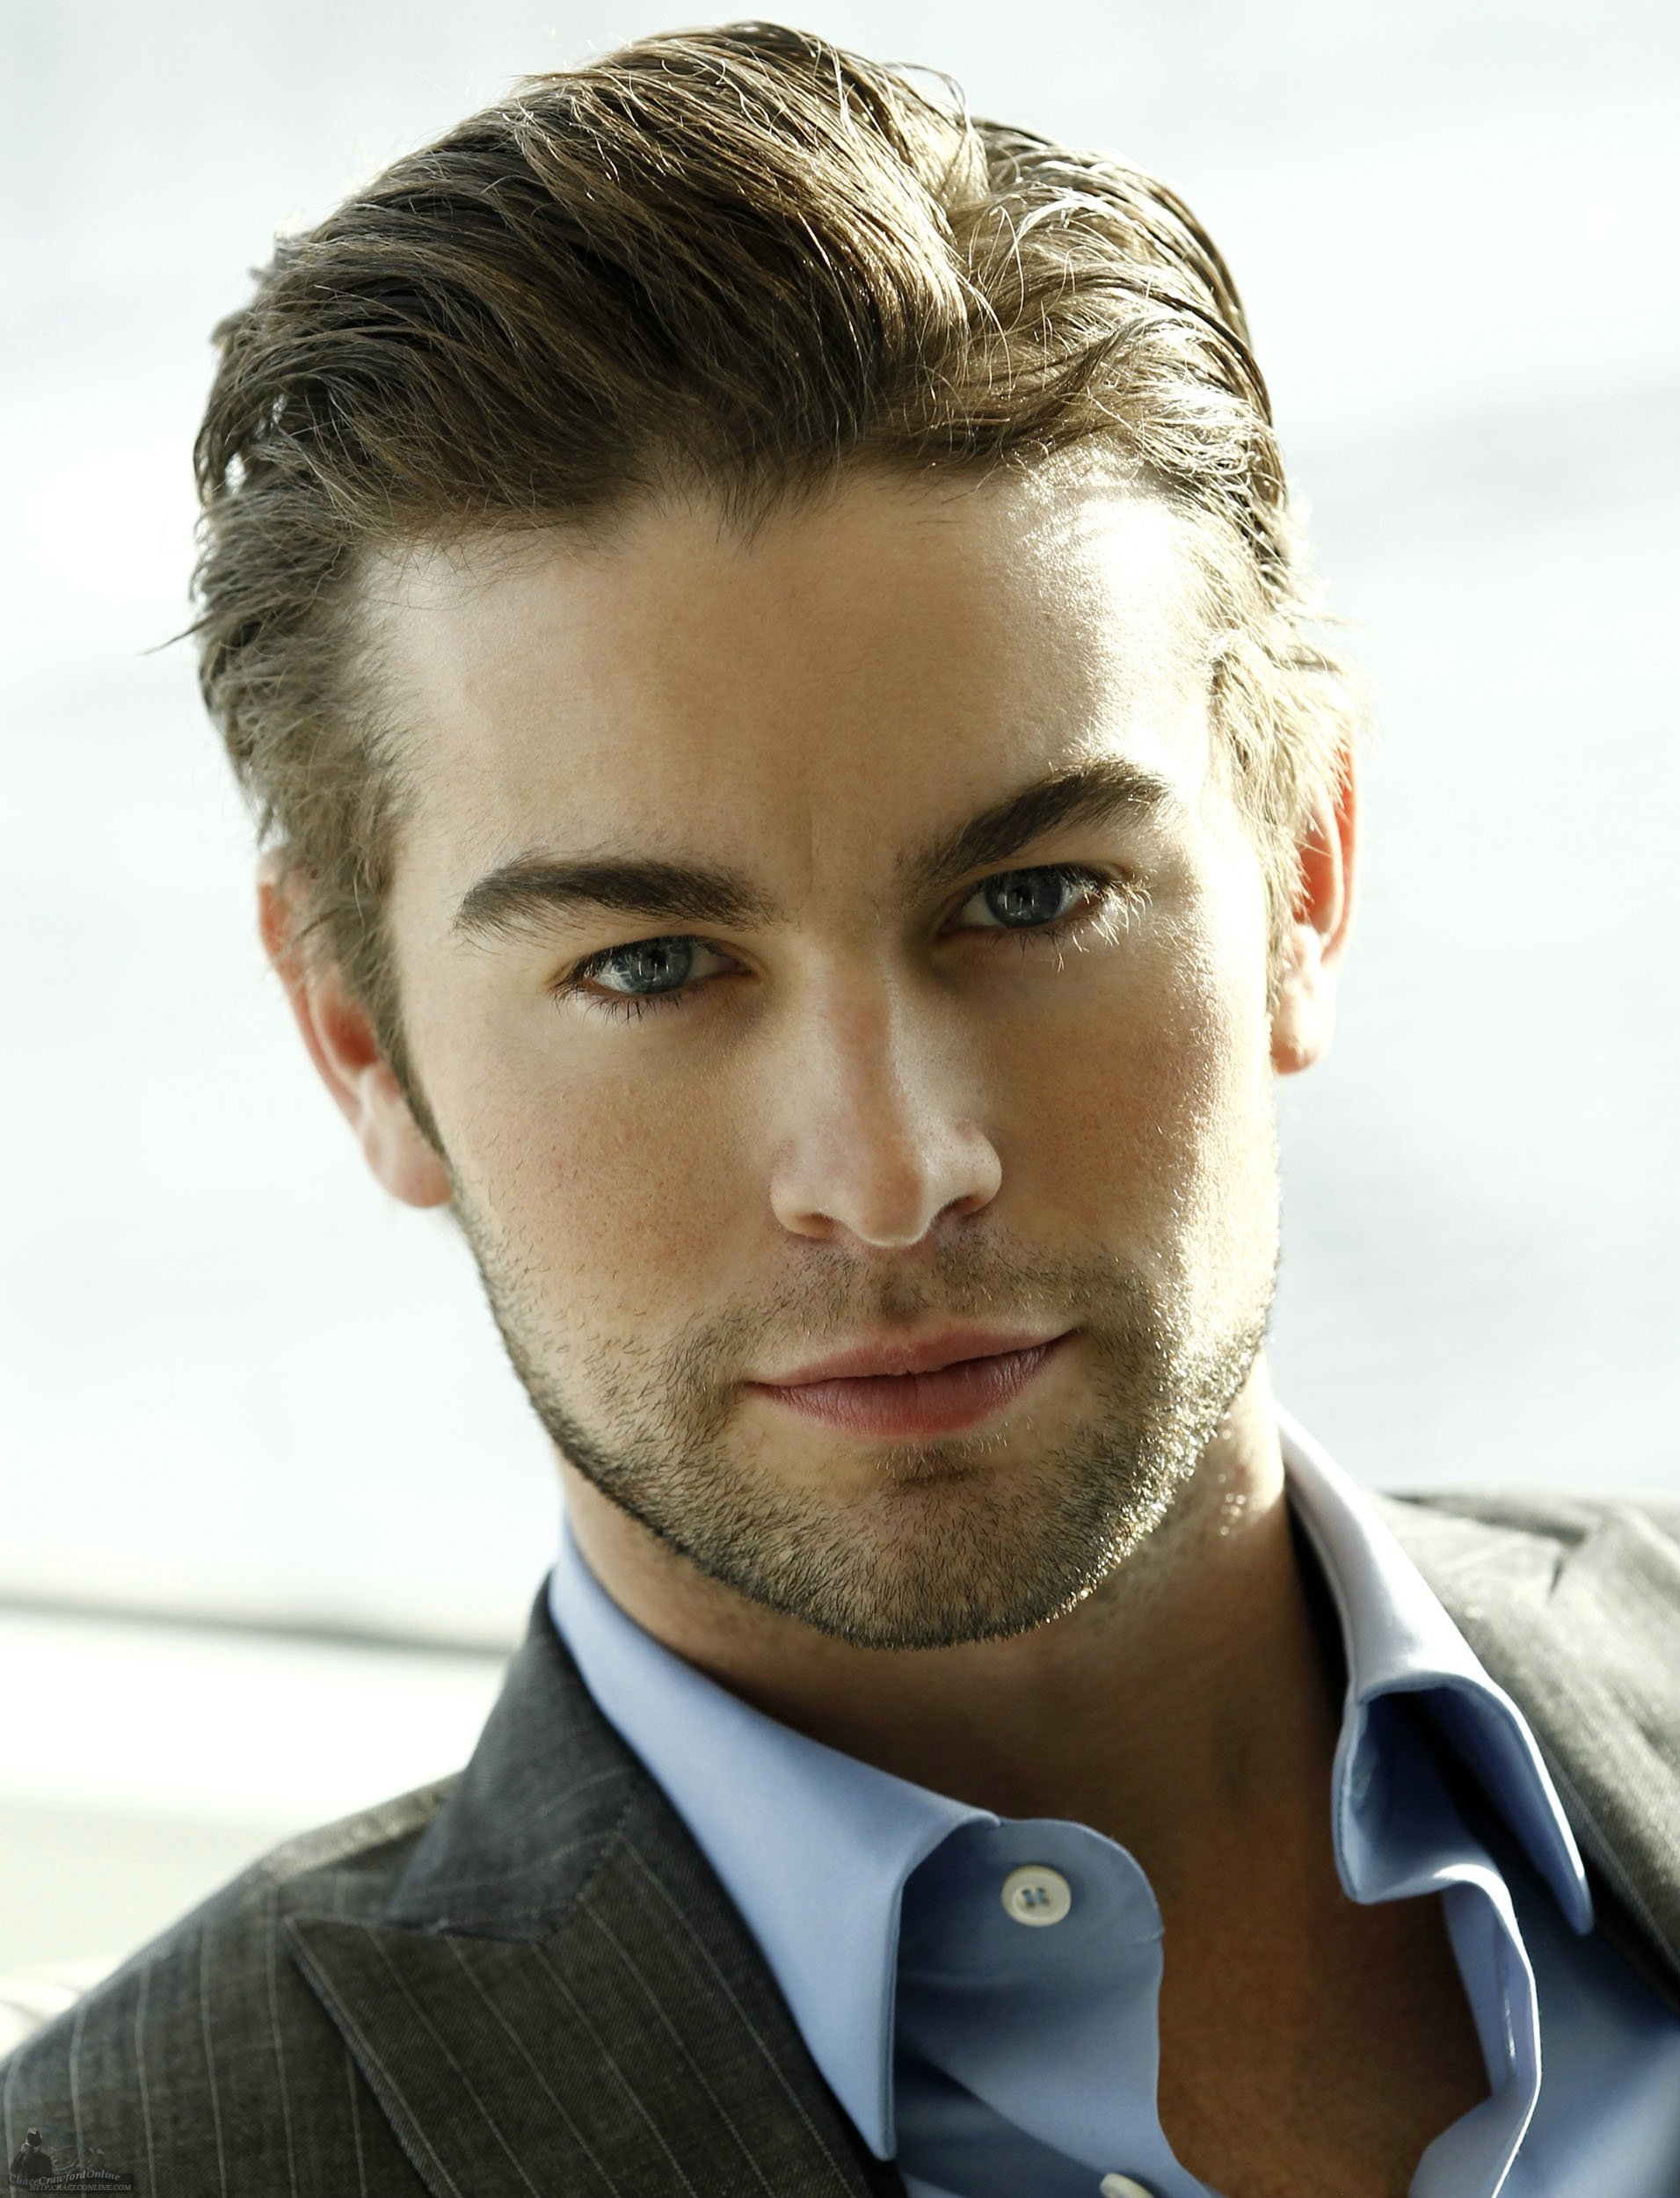 Chace Crawford Iphone HD Wallpaper